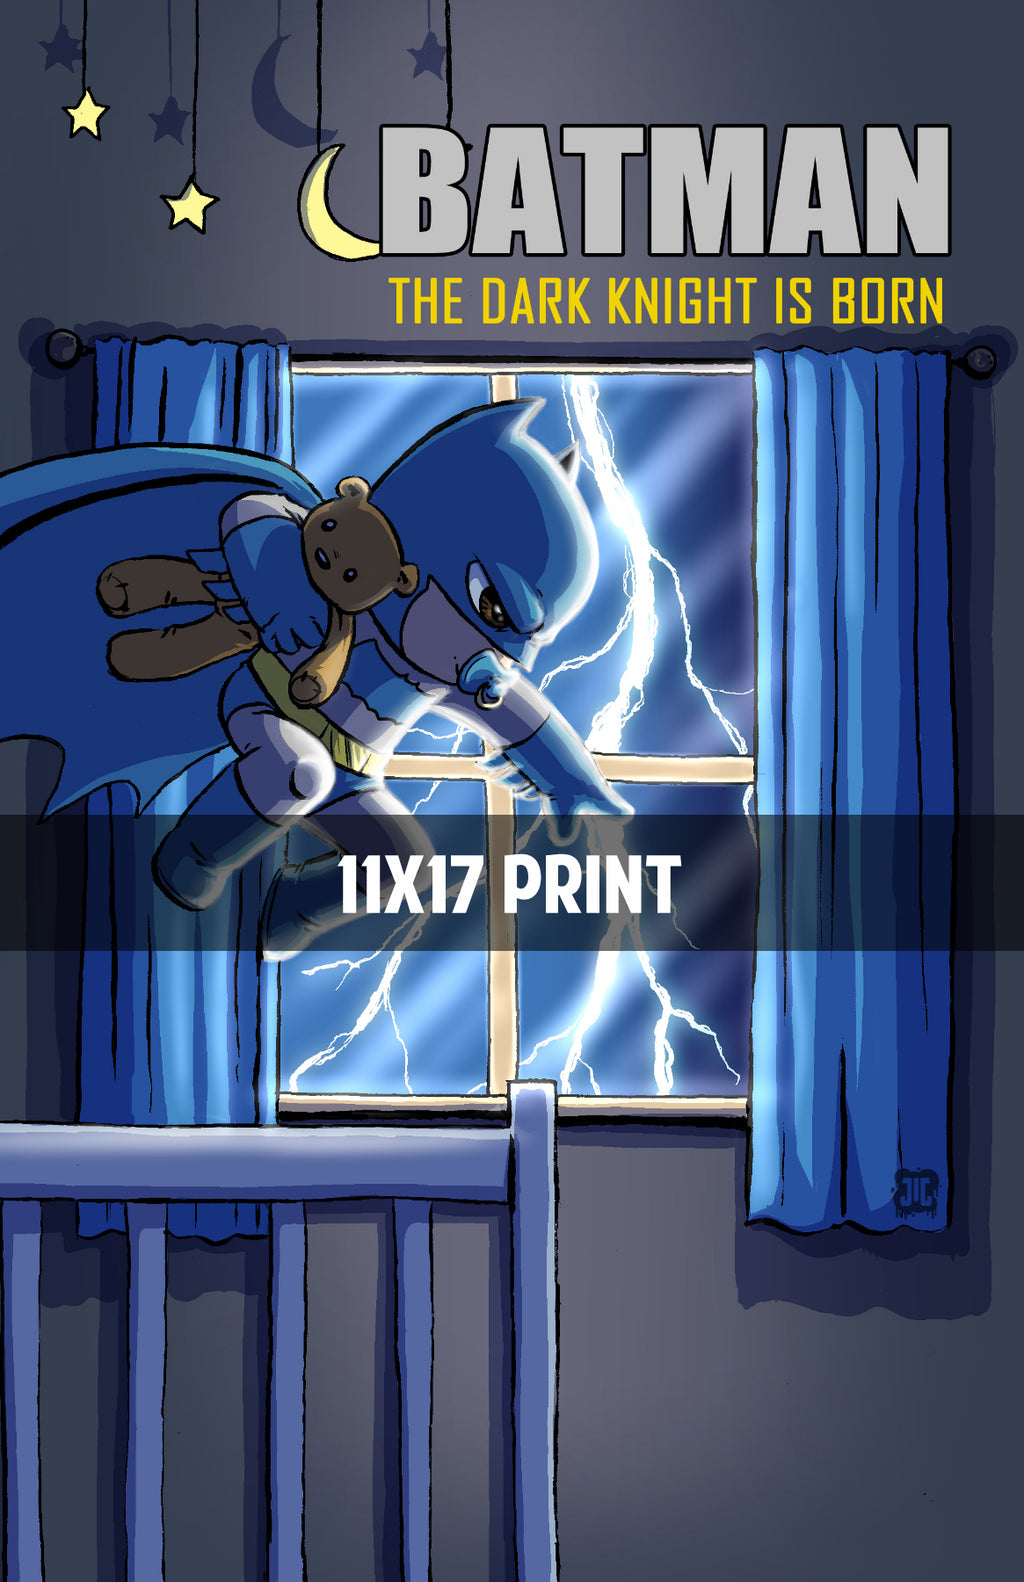 Dark Knight is Born - 11x17 Print